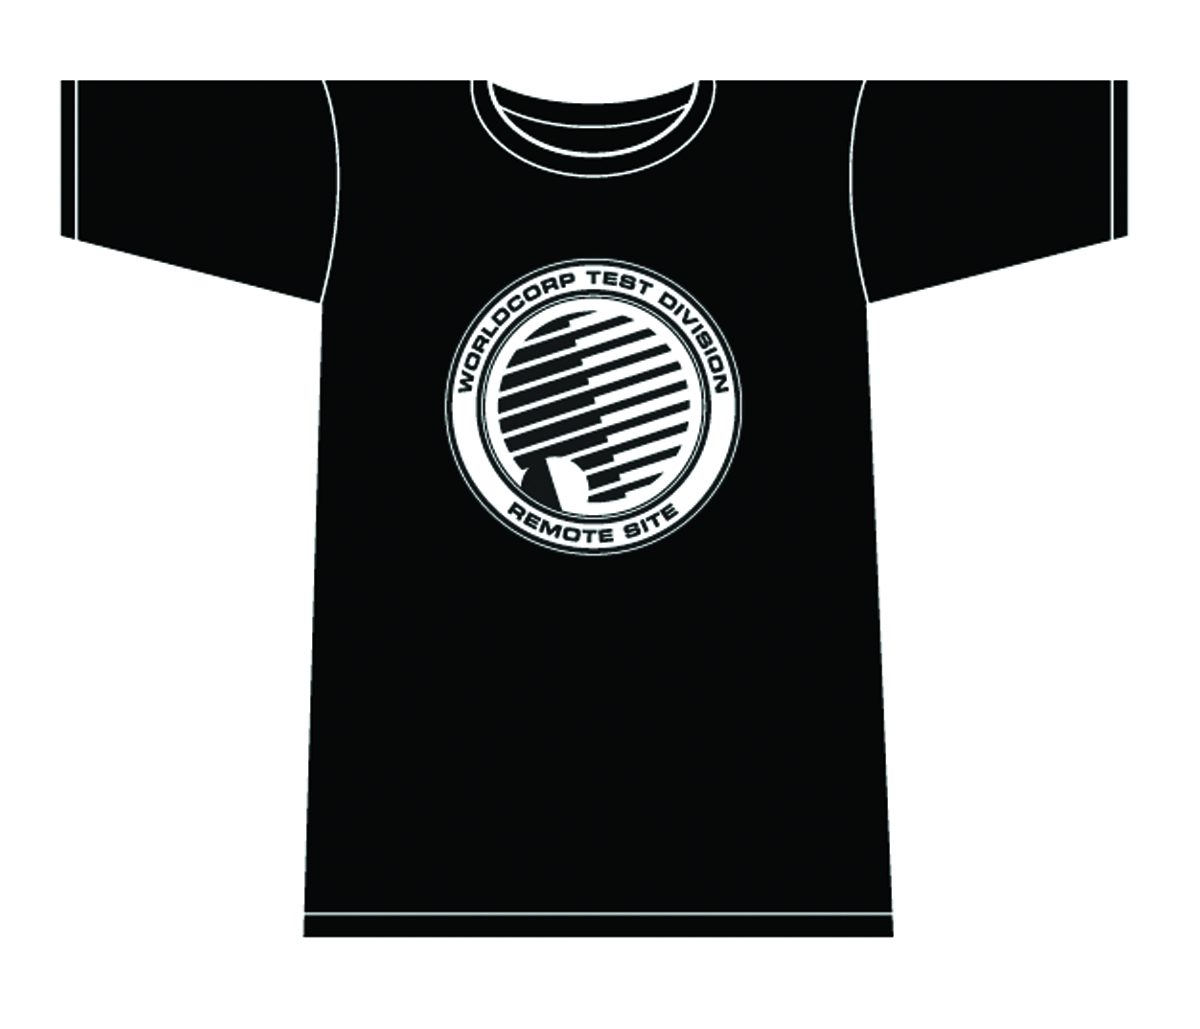 NOWHERE MEN WORLD CORP TEST DIVISION T/S BLK WOMENS SM